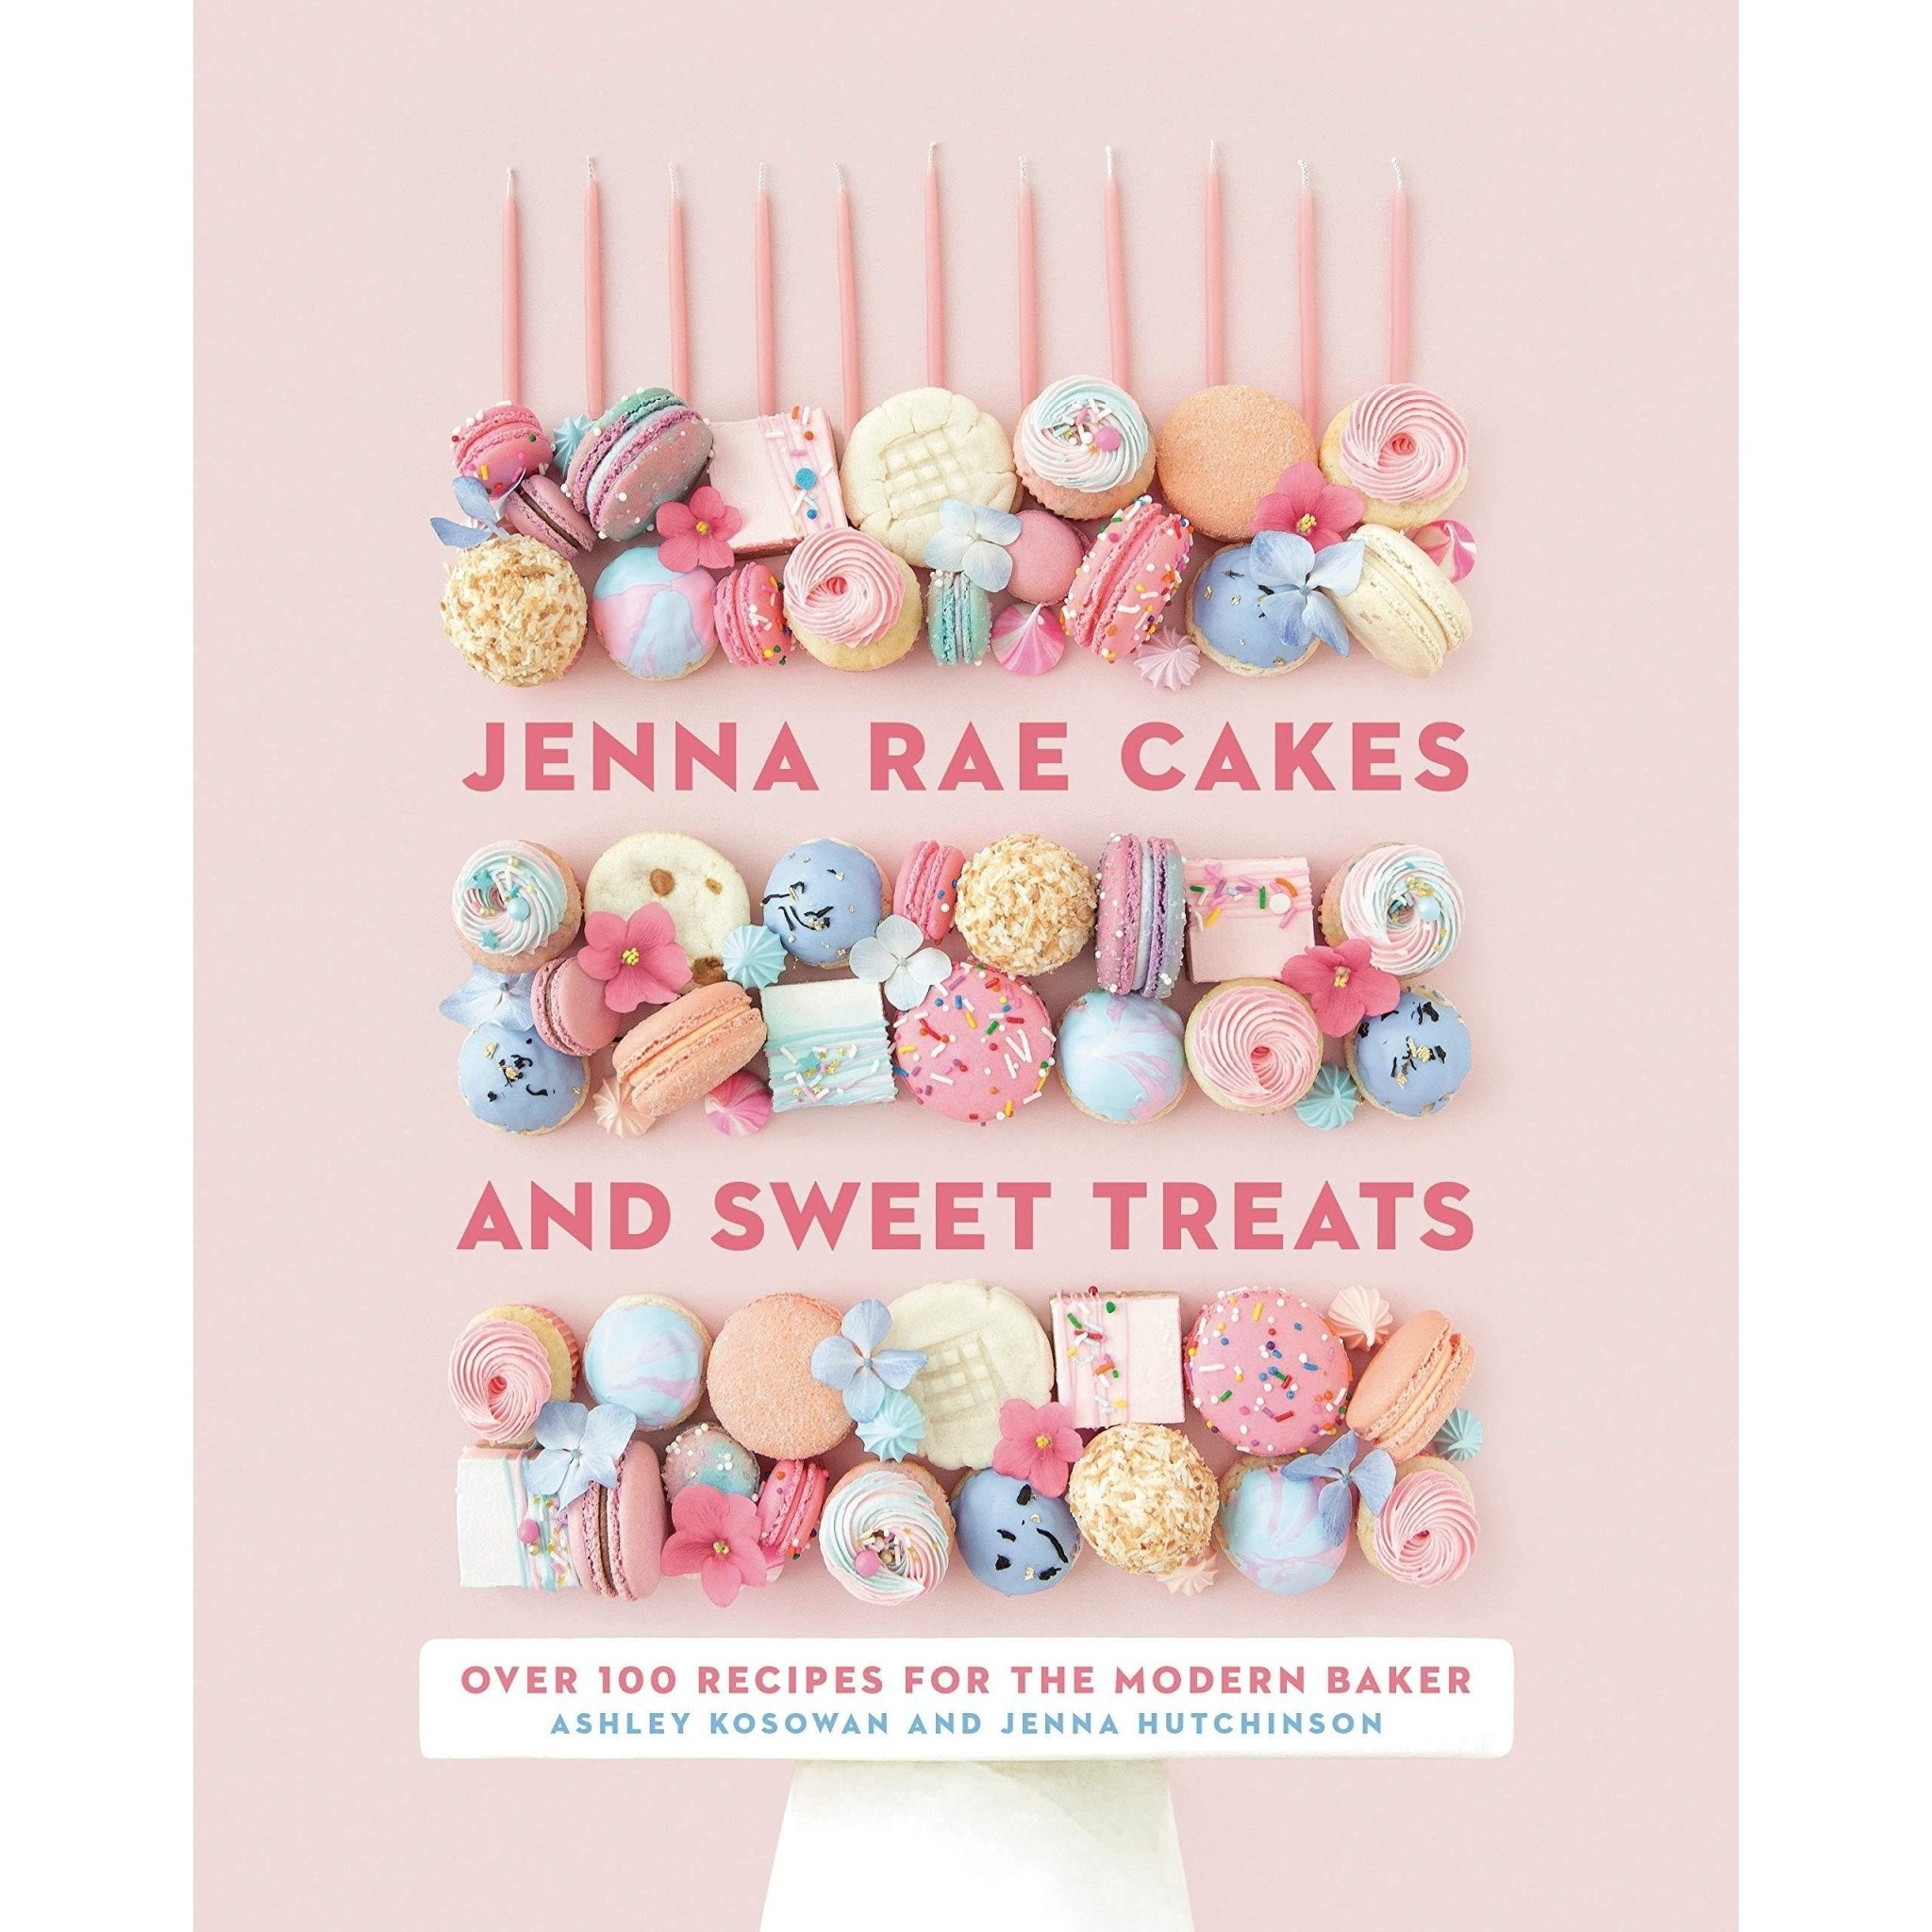 Jenna Rae Cakes & Sweet Treats: Over 100 Recipes for the Modern Baker - Hardcover - Lady of the Lake